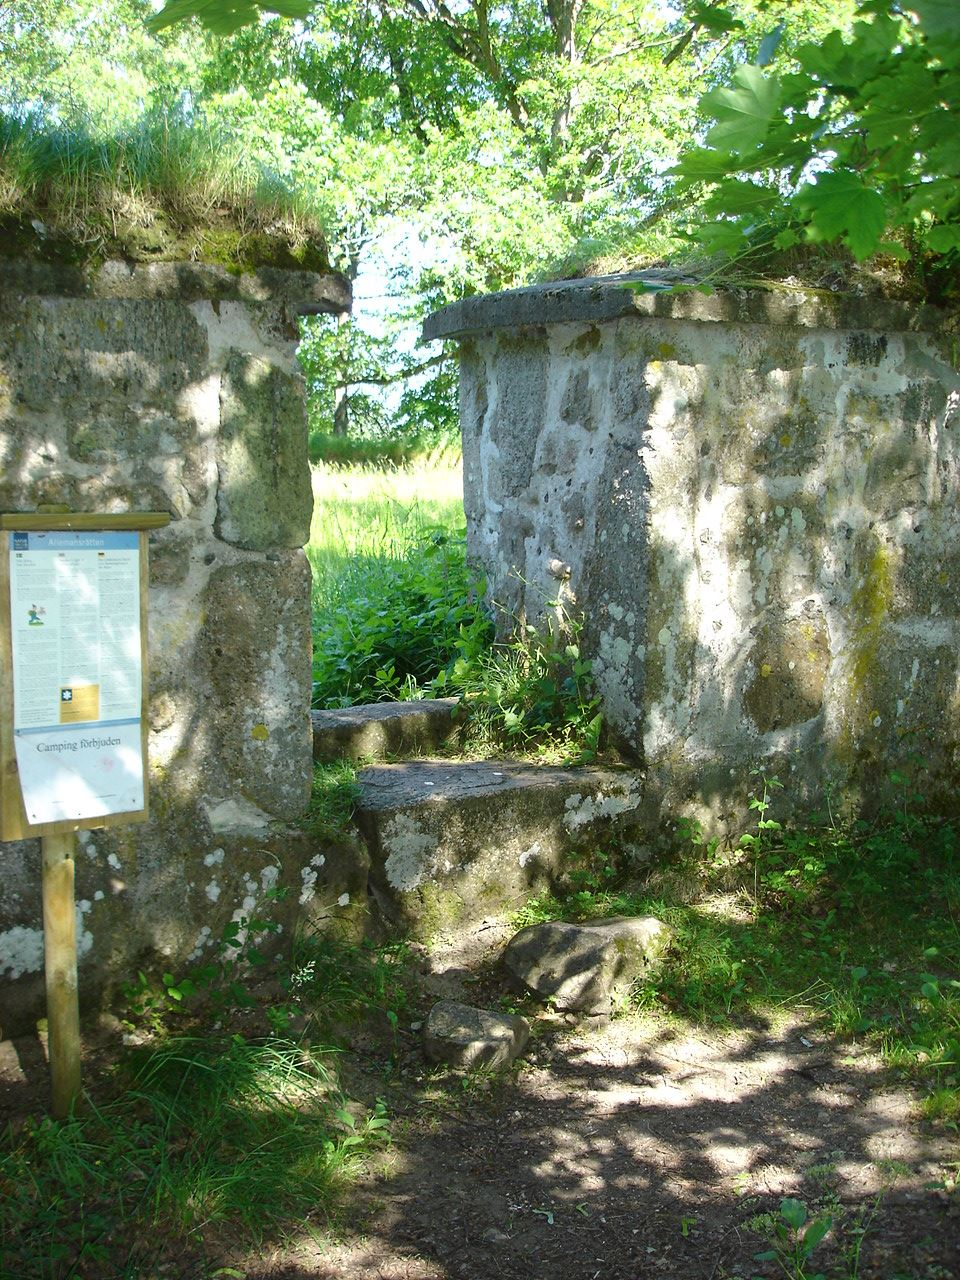 Guided tour at Skeingeborg ruins